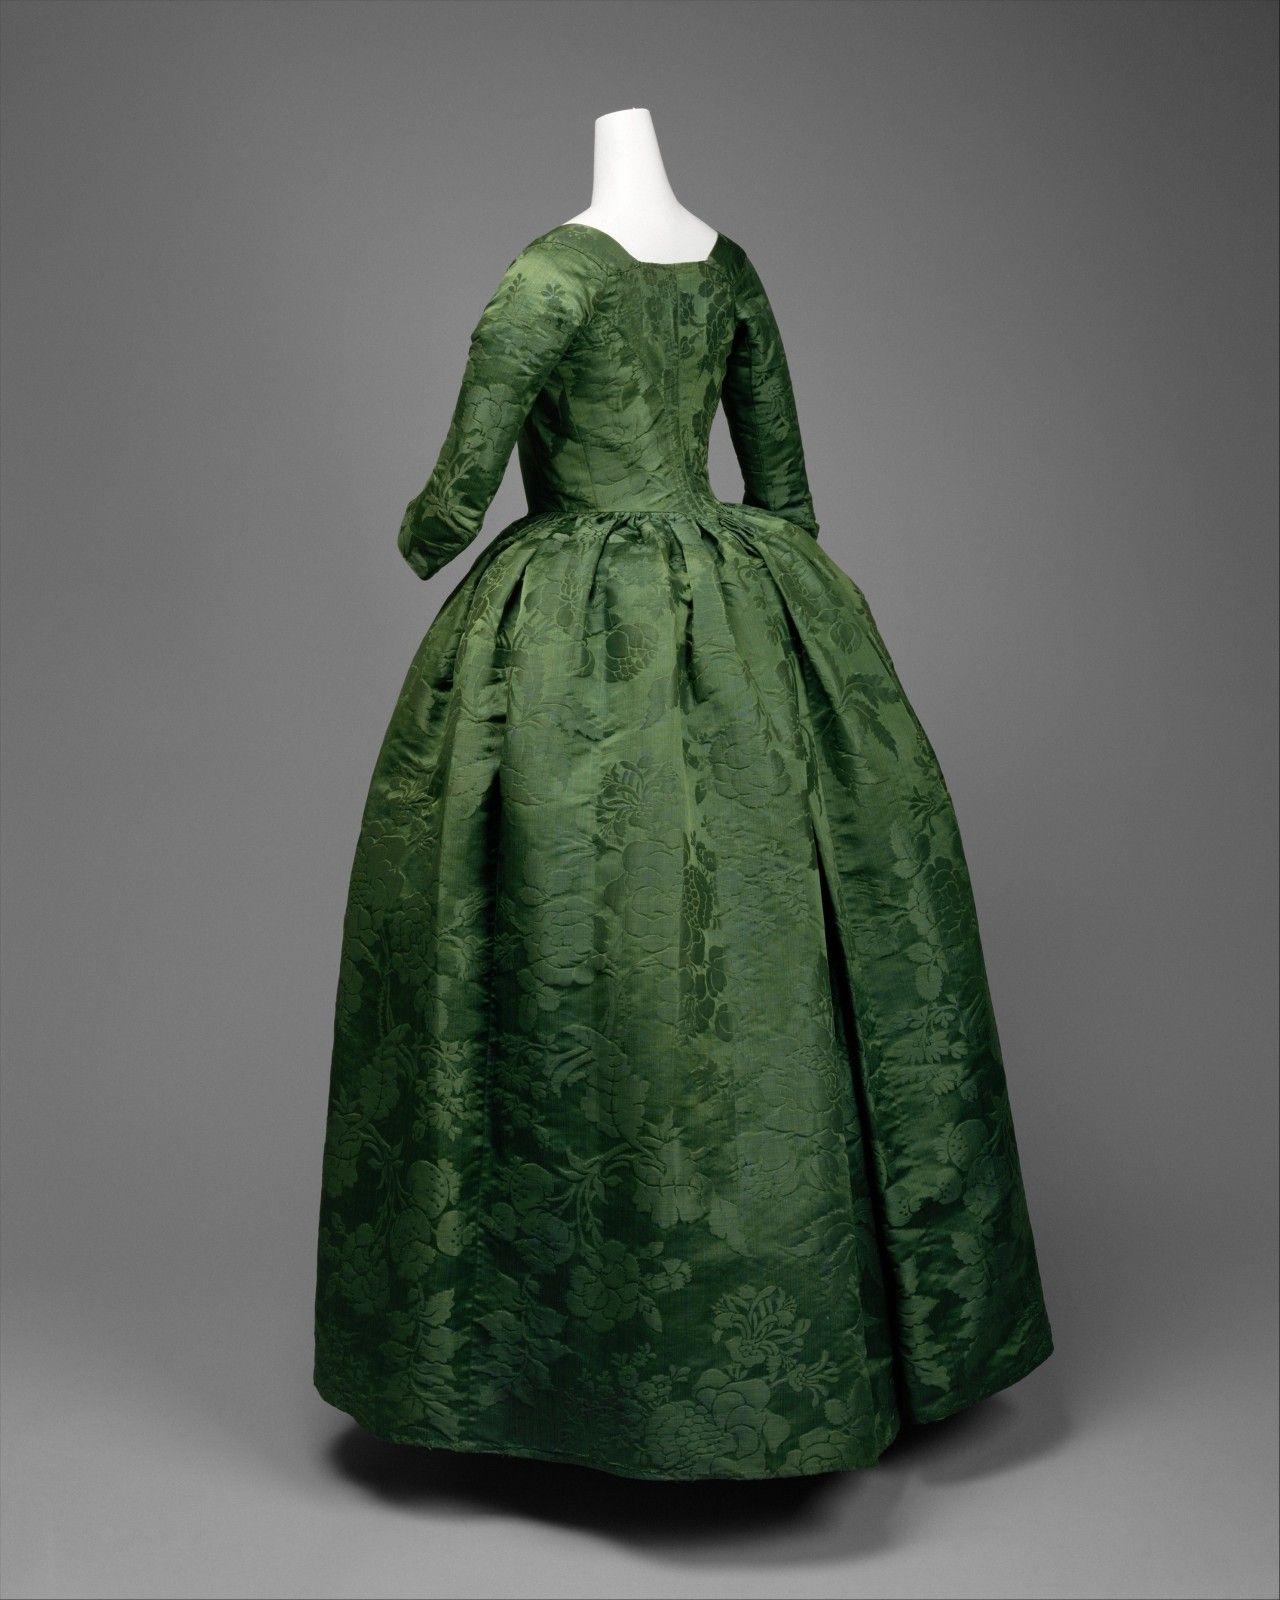 Ephemeral Elegance — Robe a l'Anglaise and Shoe Ensemble, ca. 1775 via... #dollvictoriandressstyles